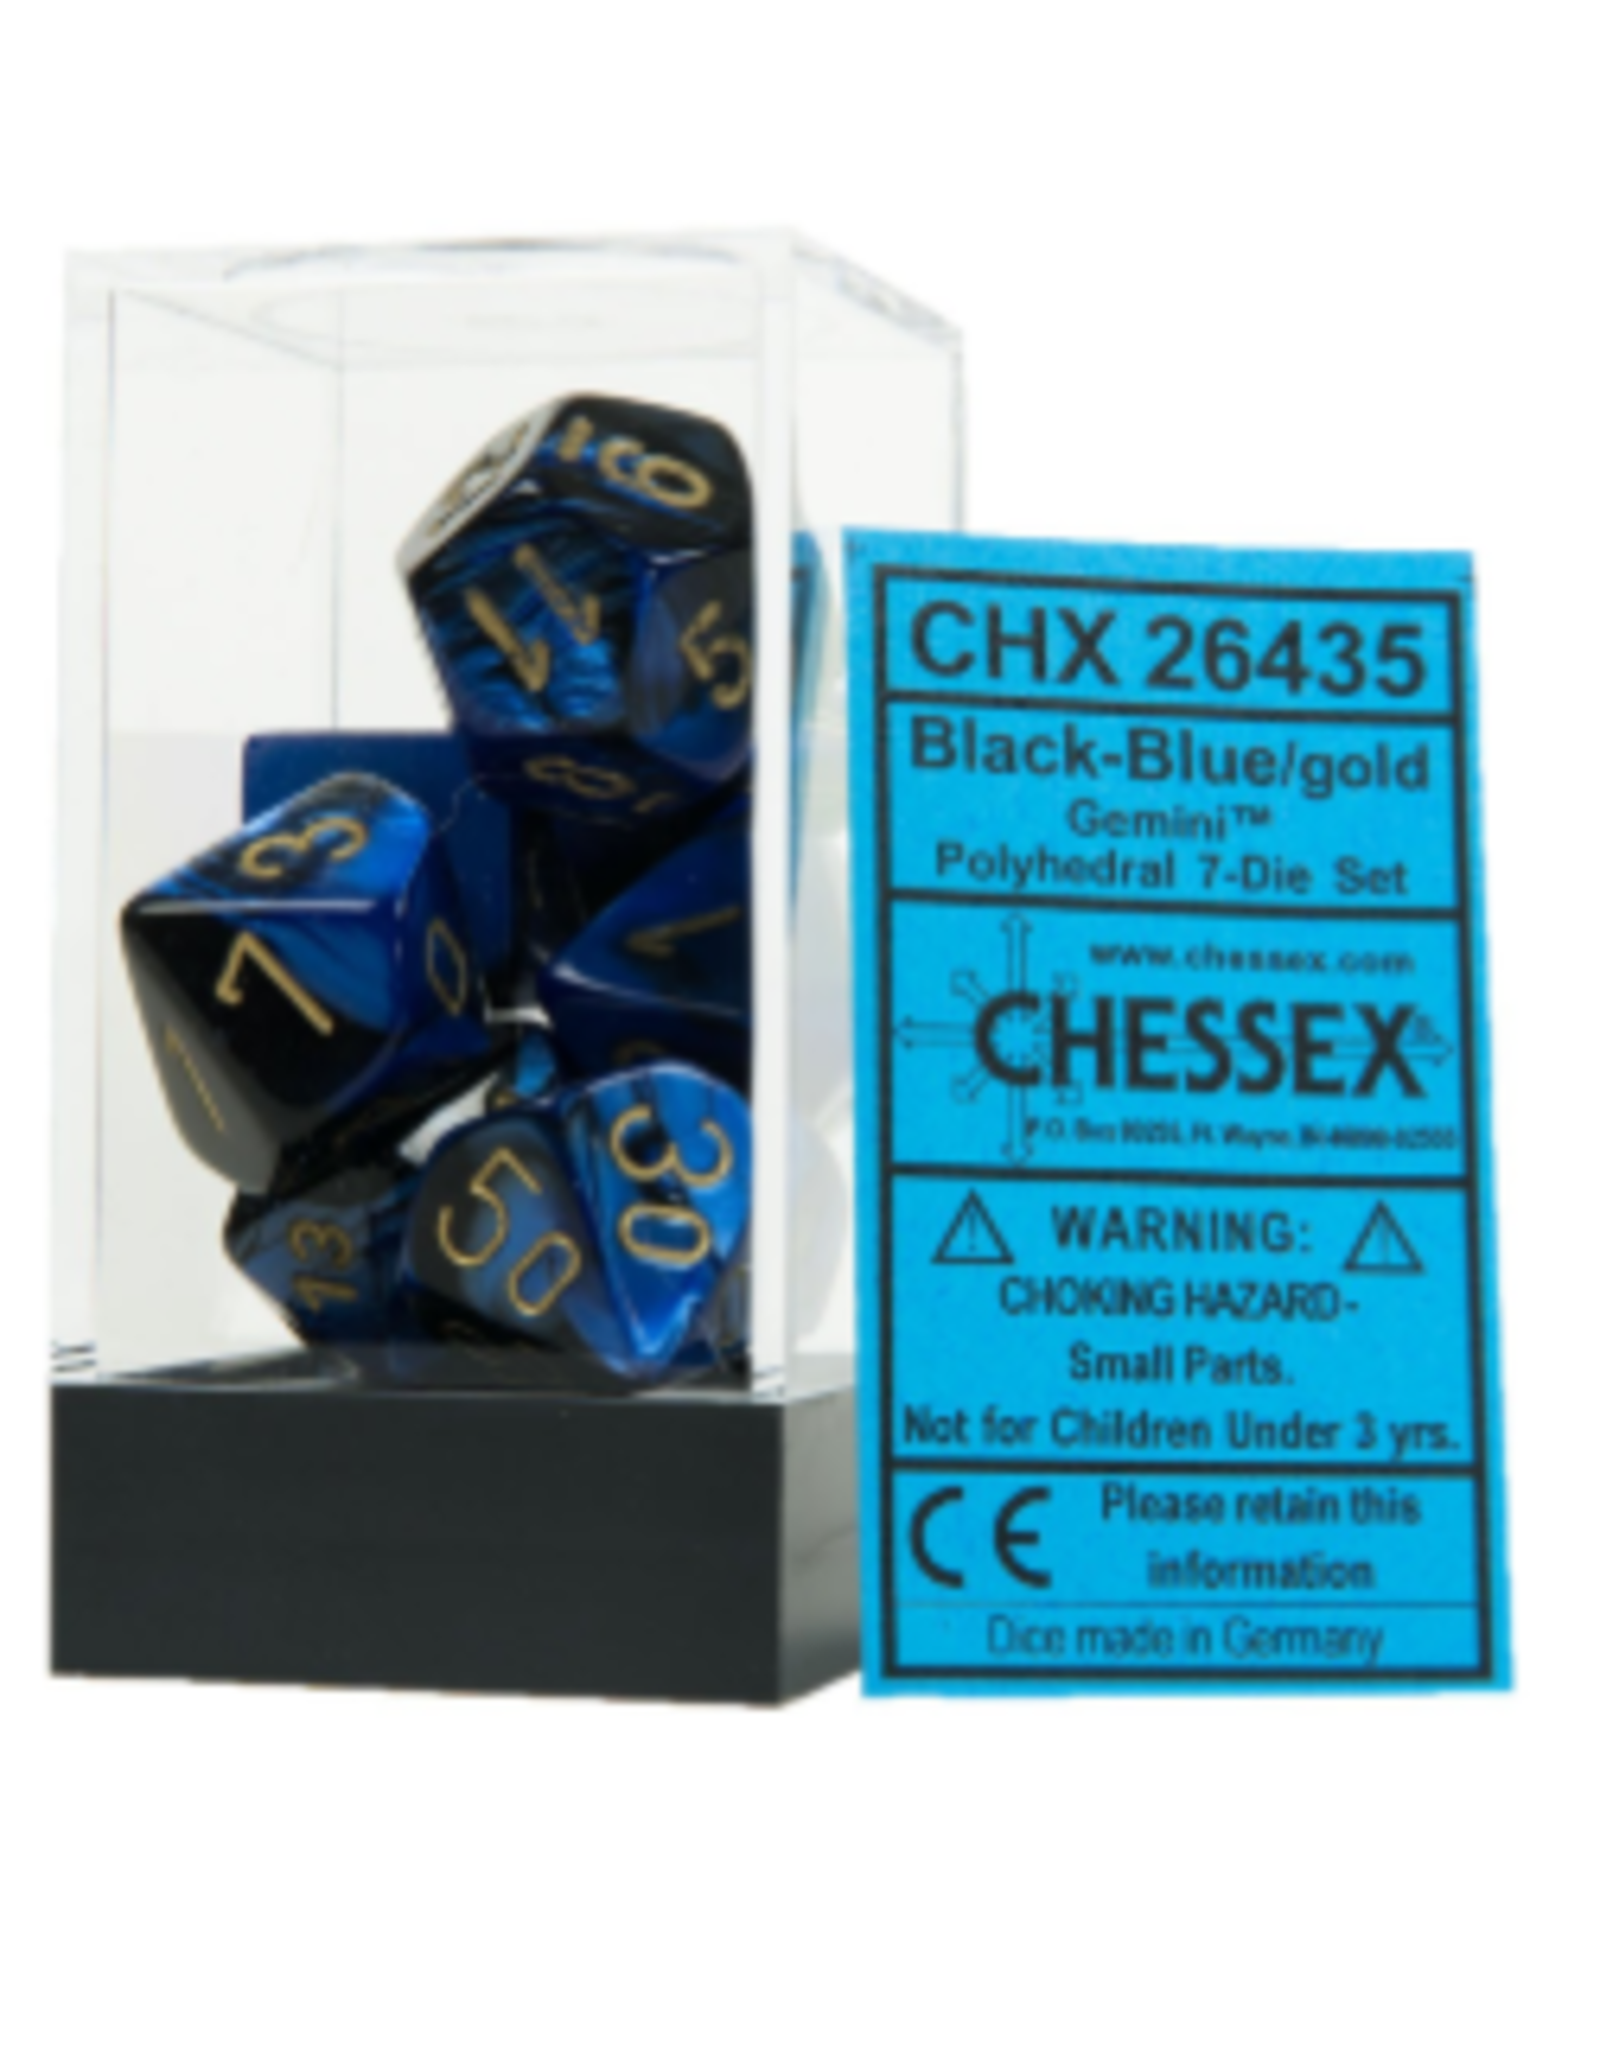 Chessex Chessex Dice FBA_26435 Polyhedral 7-Die Gemini Set - Black-Blue with Gold Chx-26435, Multicolor